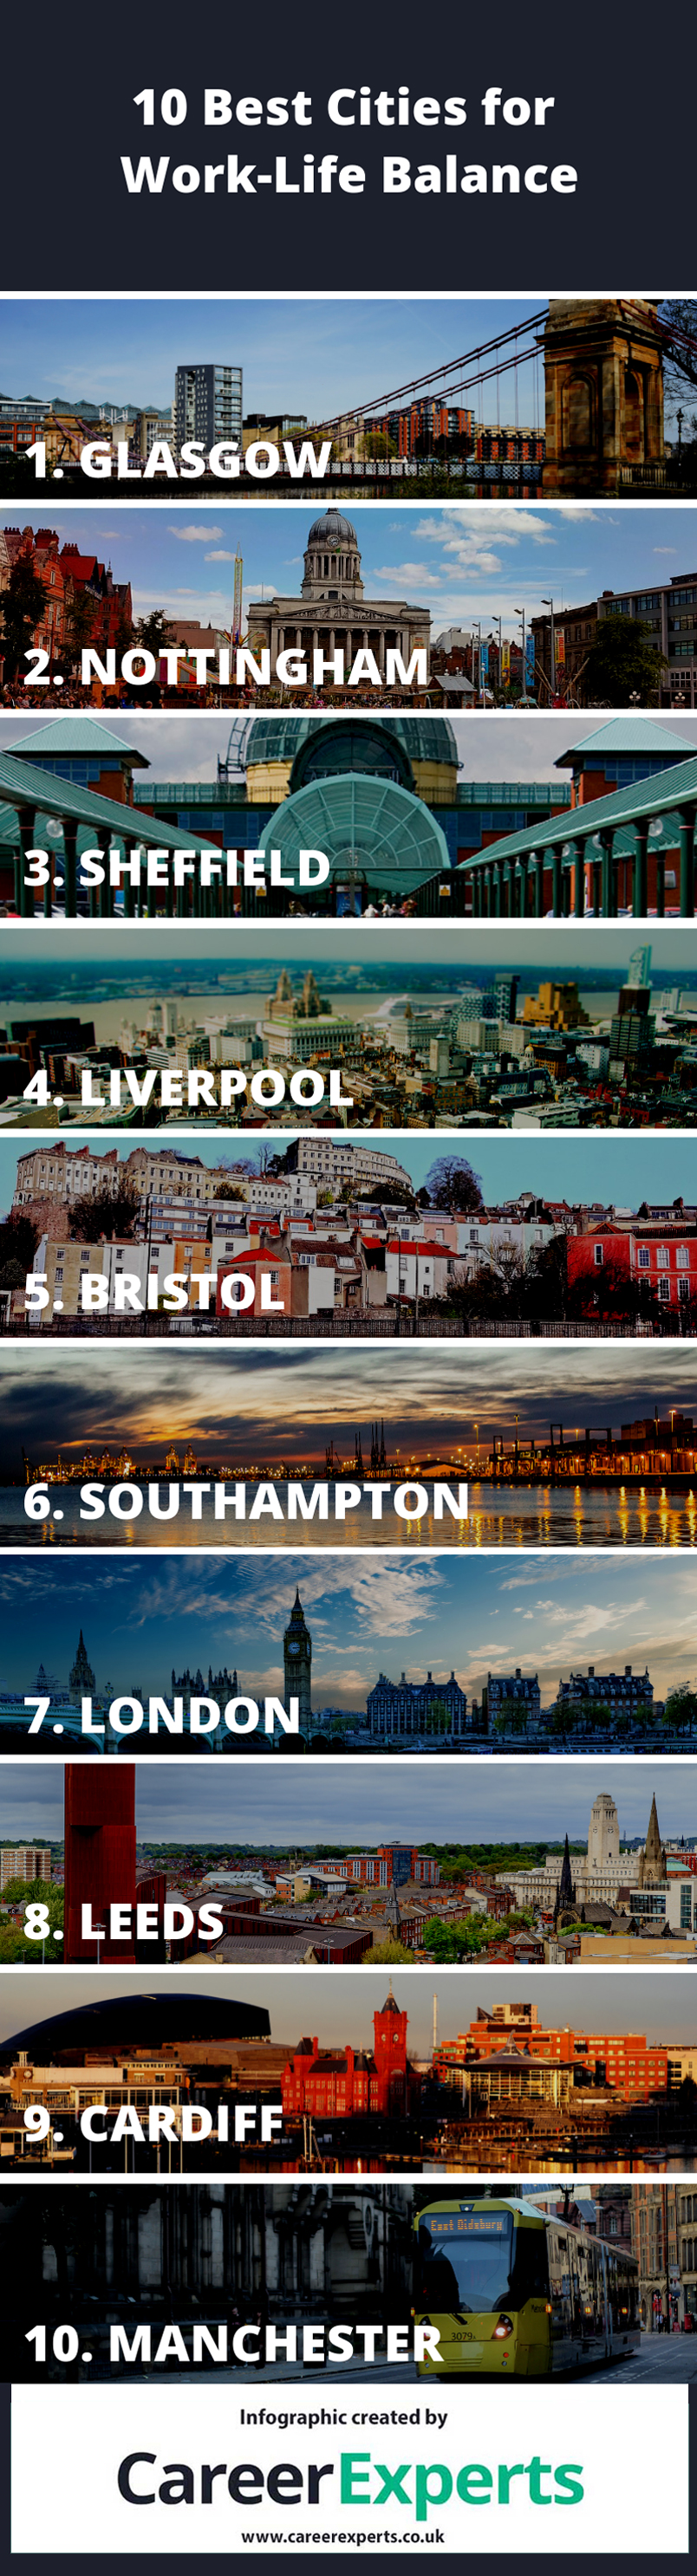 10 best cities for work-life balance infographic